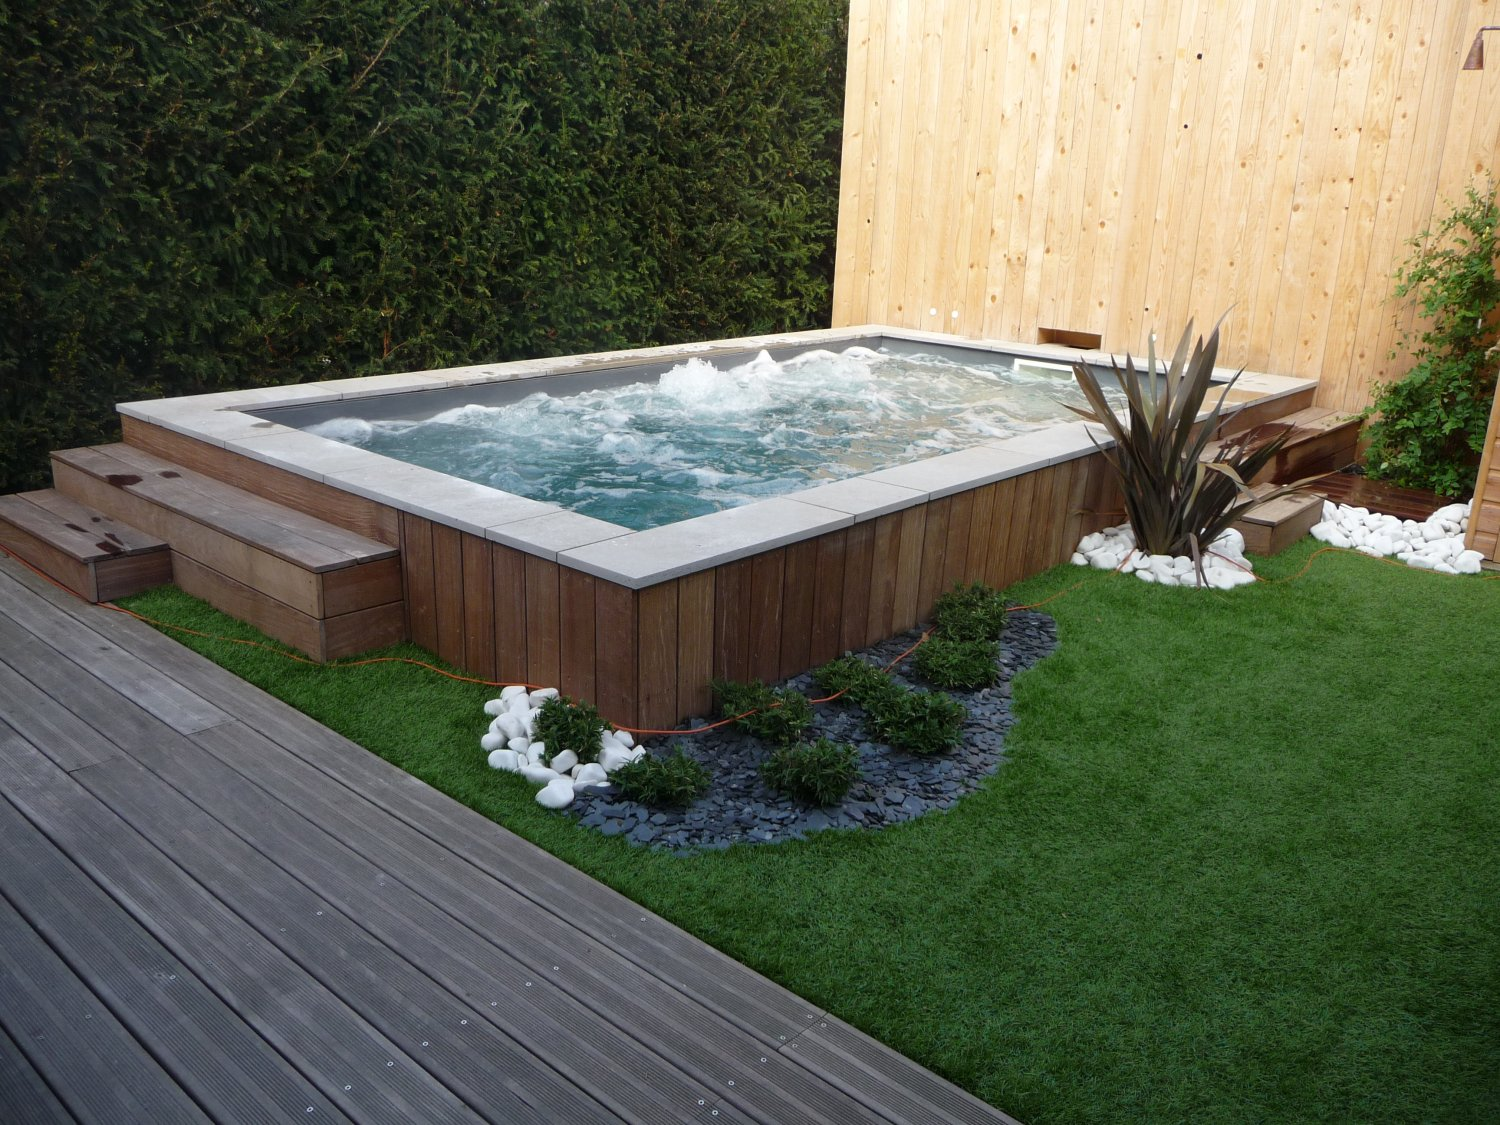 Am nager son jardin ext rieur faire une terrasse en bois for Decoration exterieur piscine